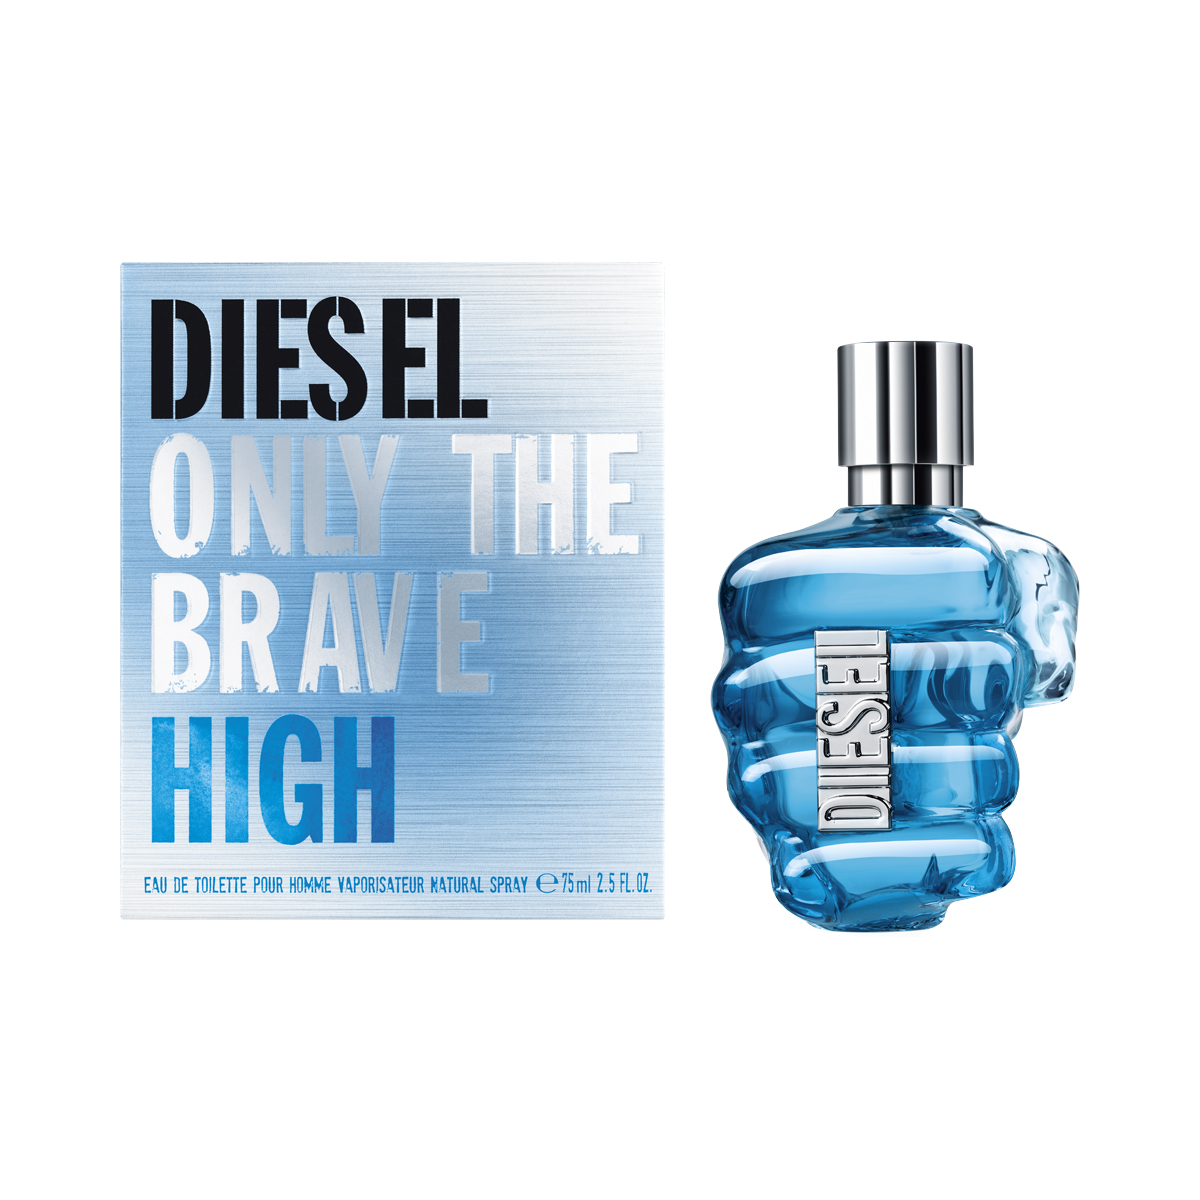 Diesel - Only the Brave High - eau the toilette